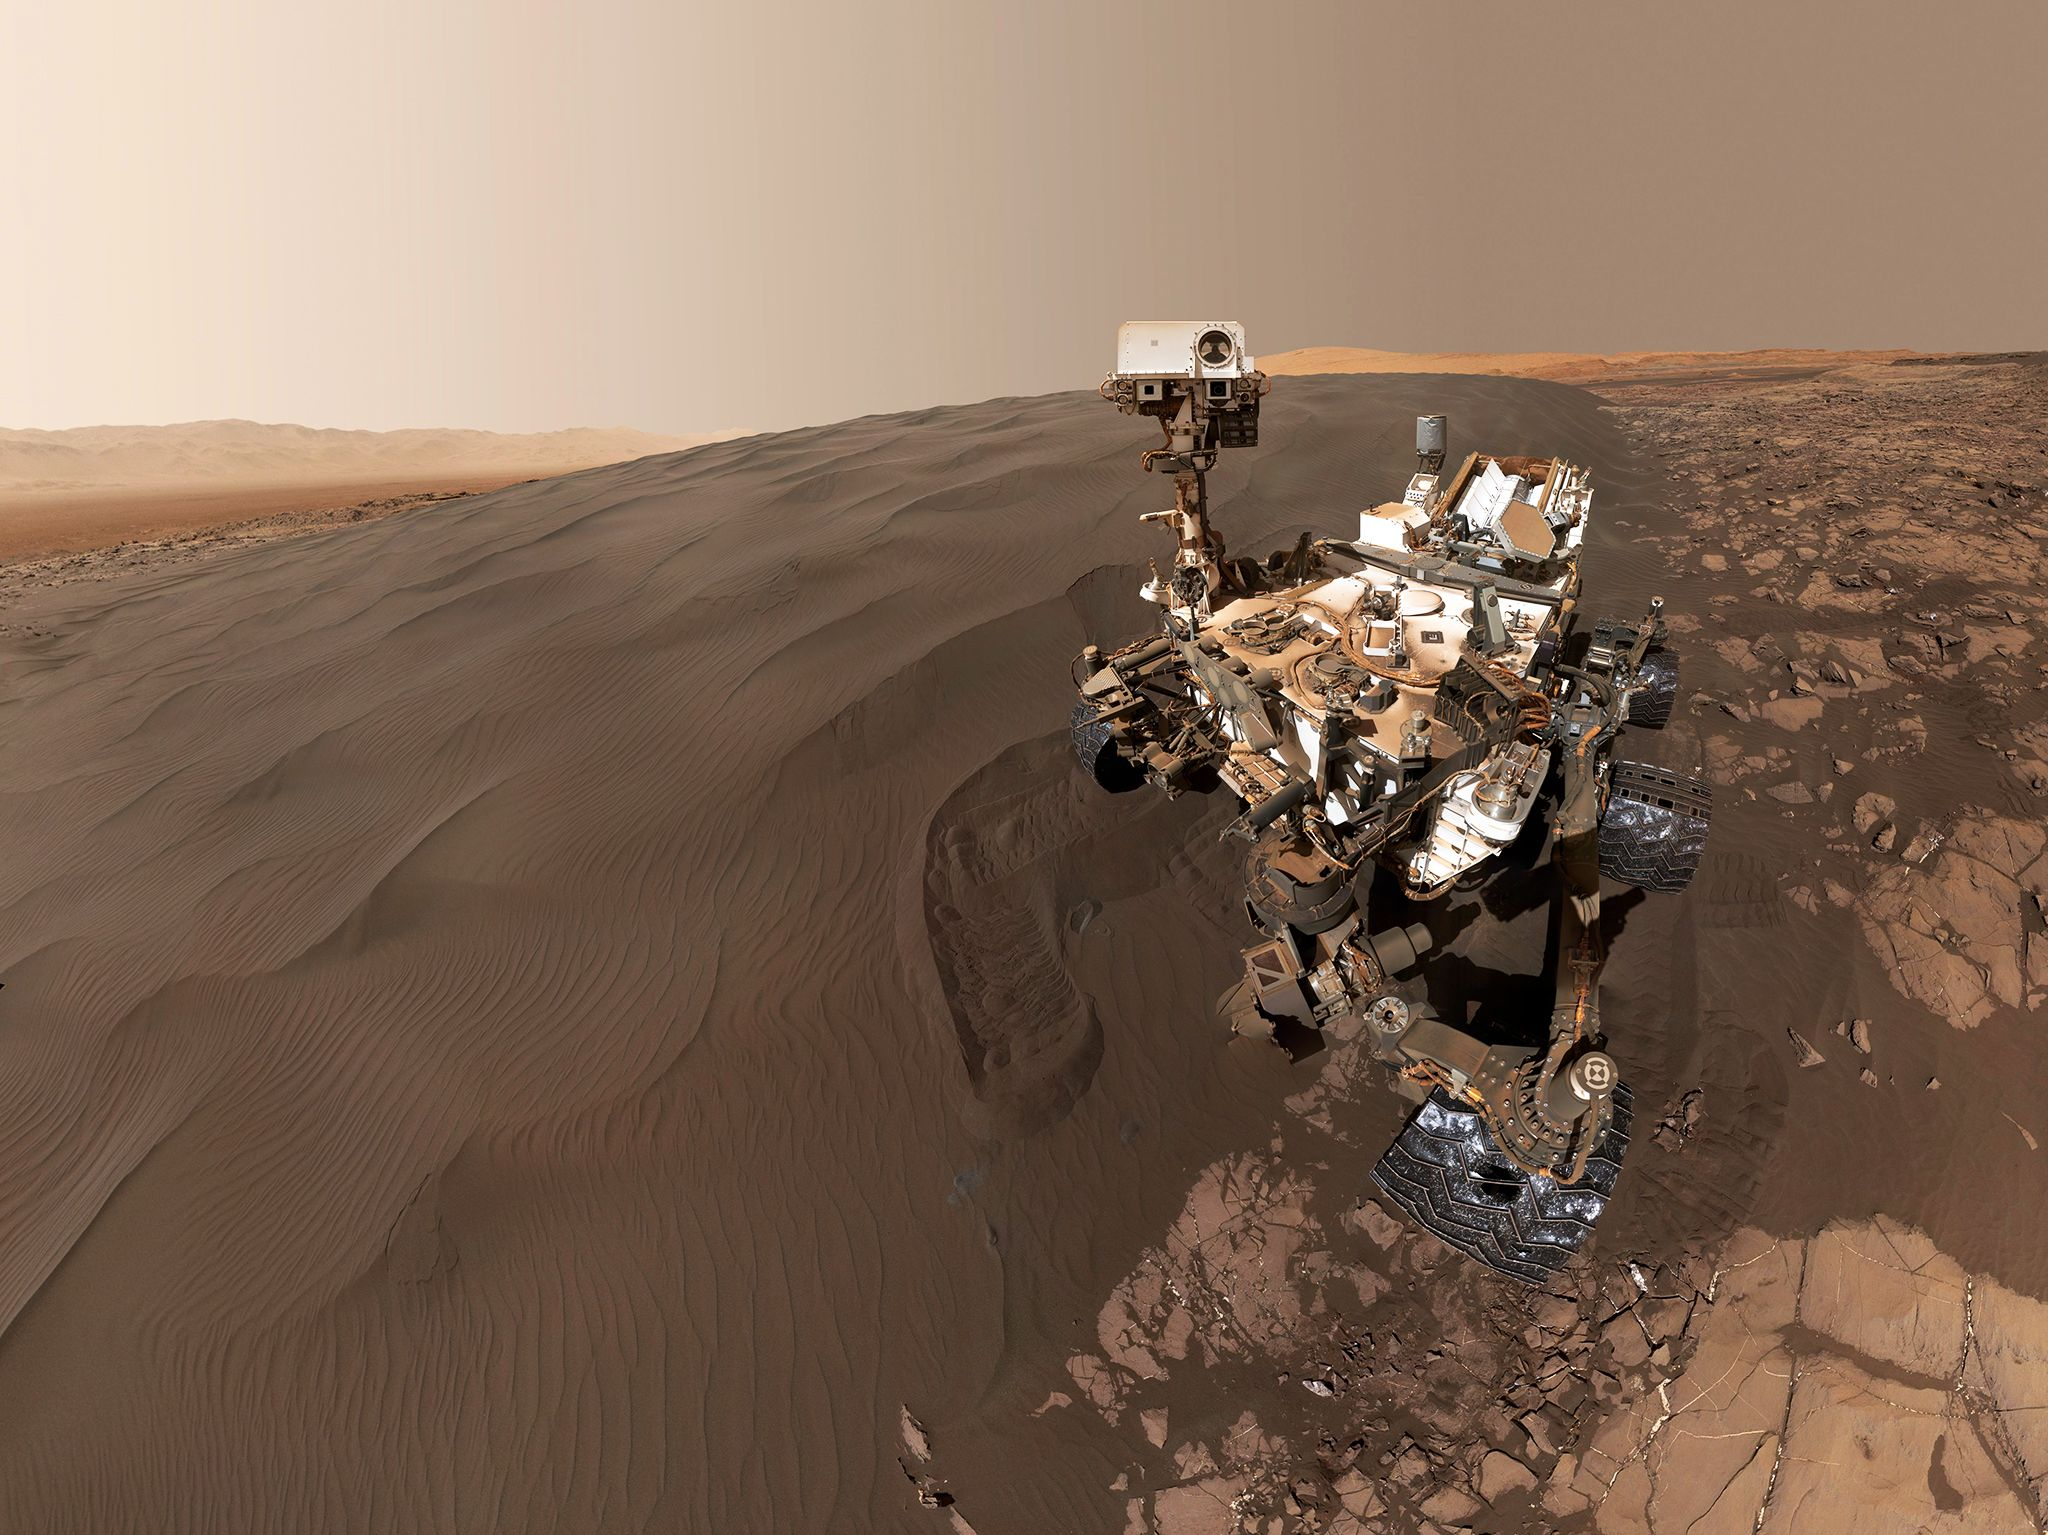 Curiosity selfie at Bagnold Dunes in Gale Crater, sol 1228. This image is from Curiosity: Life... [Foto del giorno - November 2018]